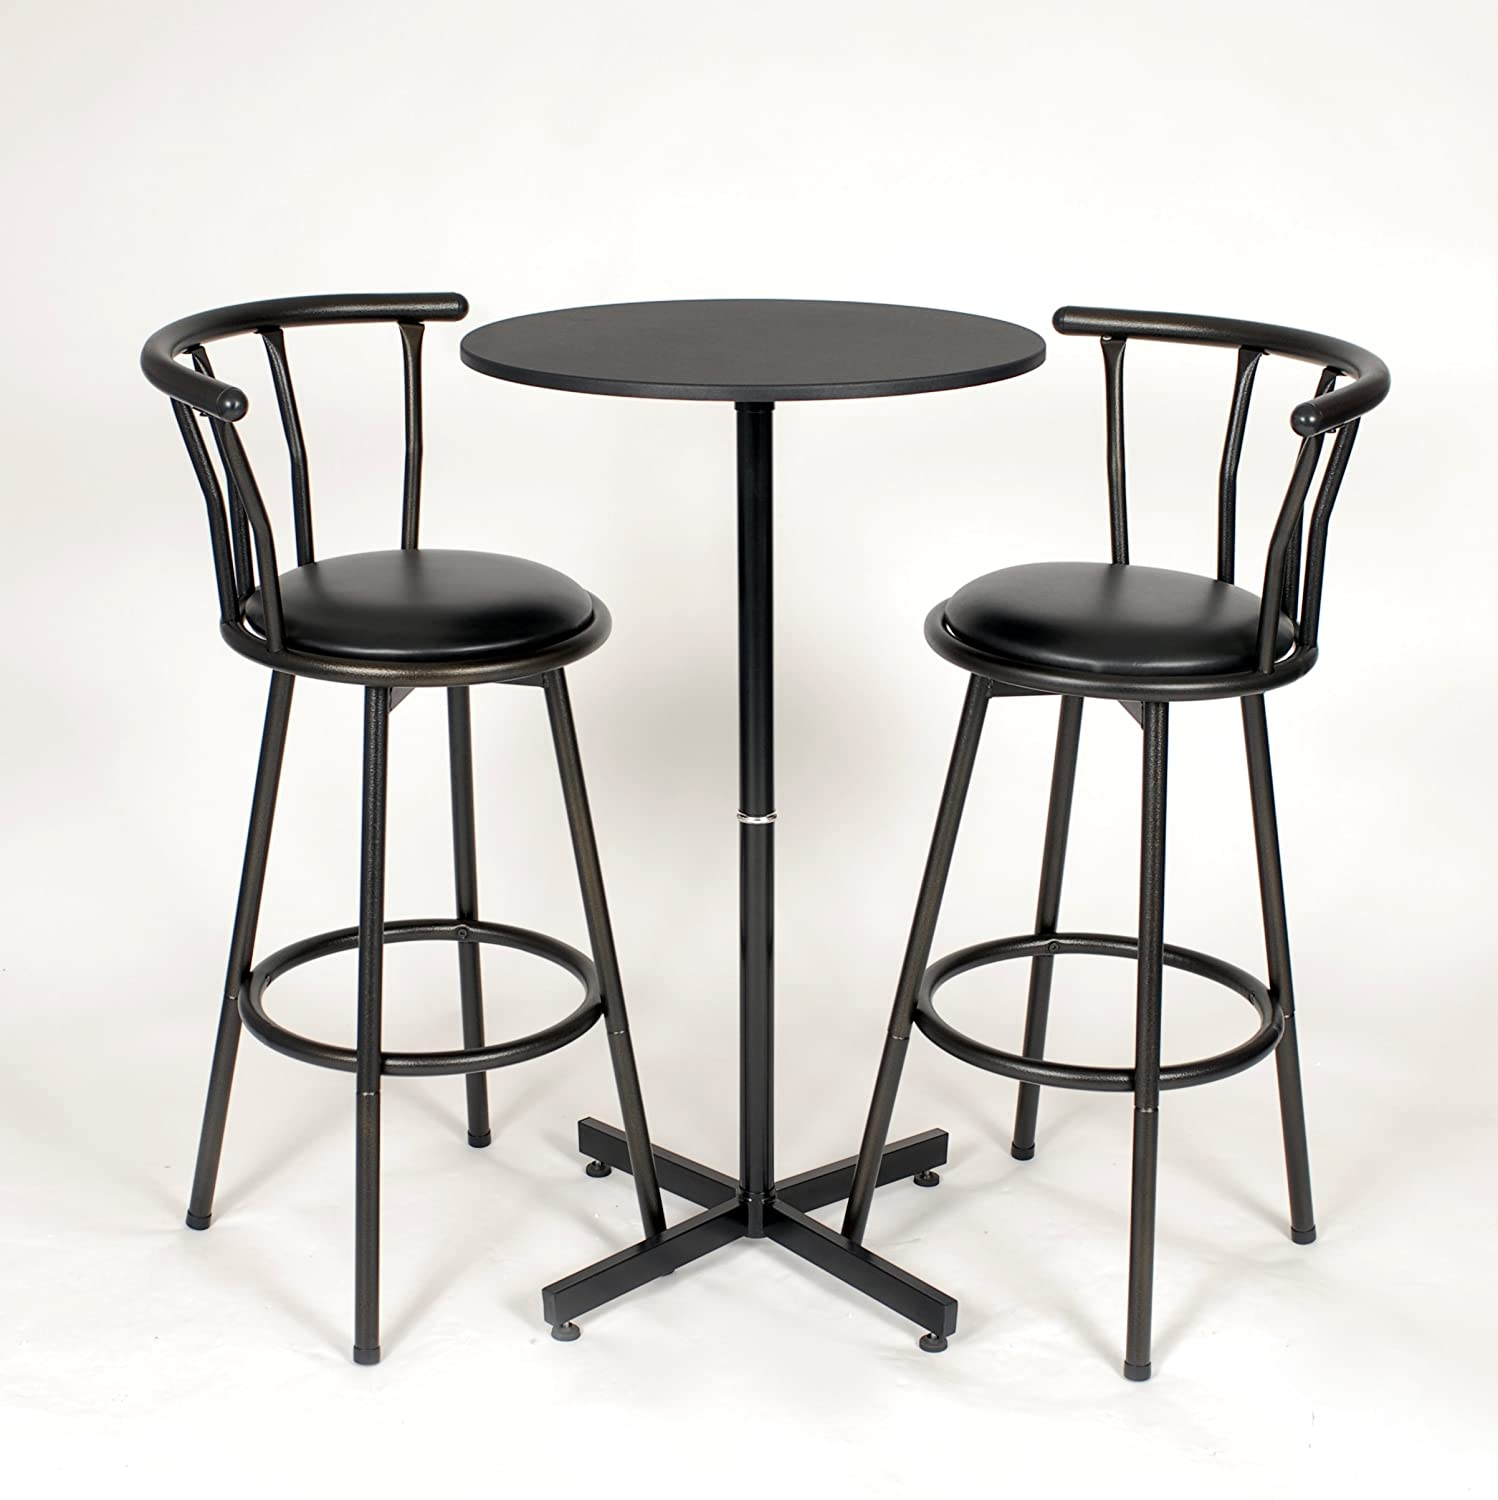 100 round bar table and chairs funiture silver beth b bar t